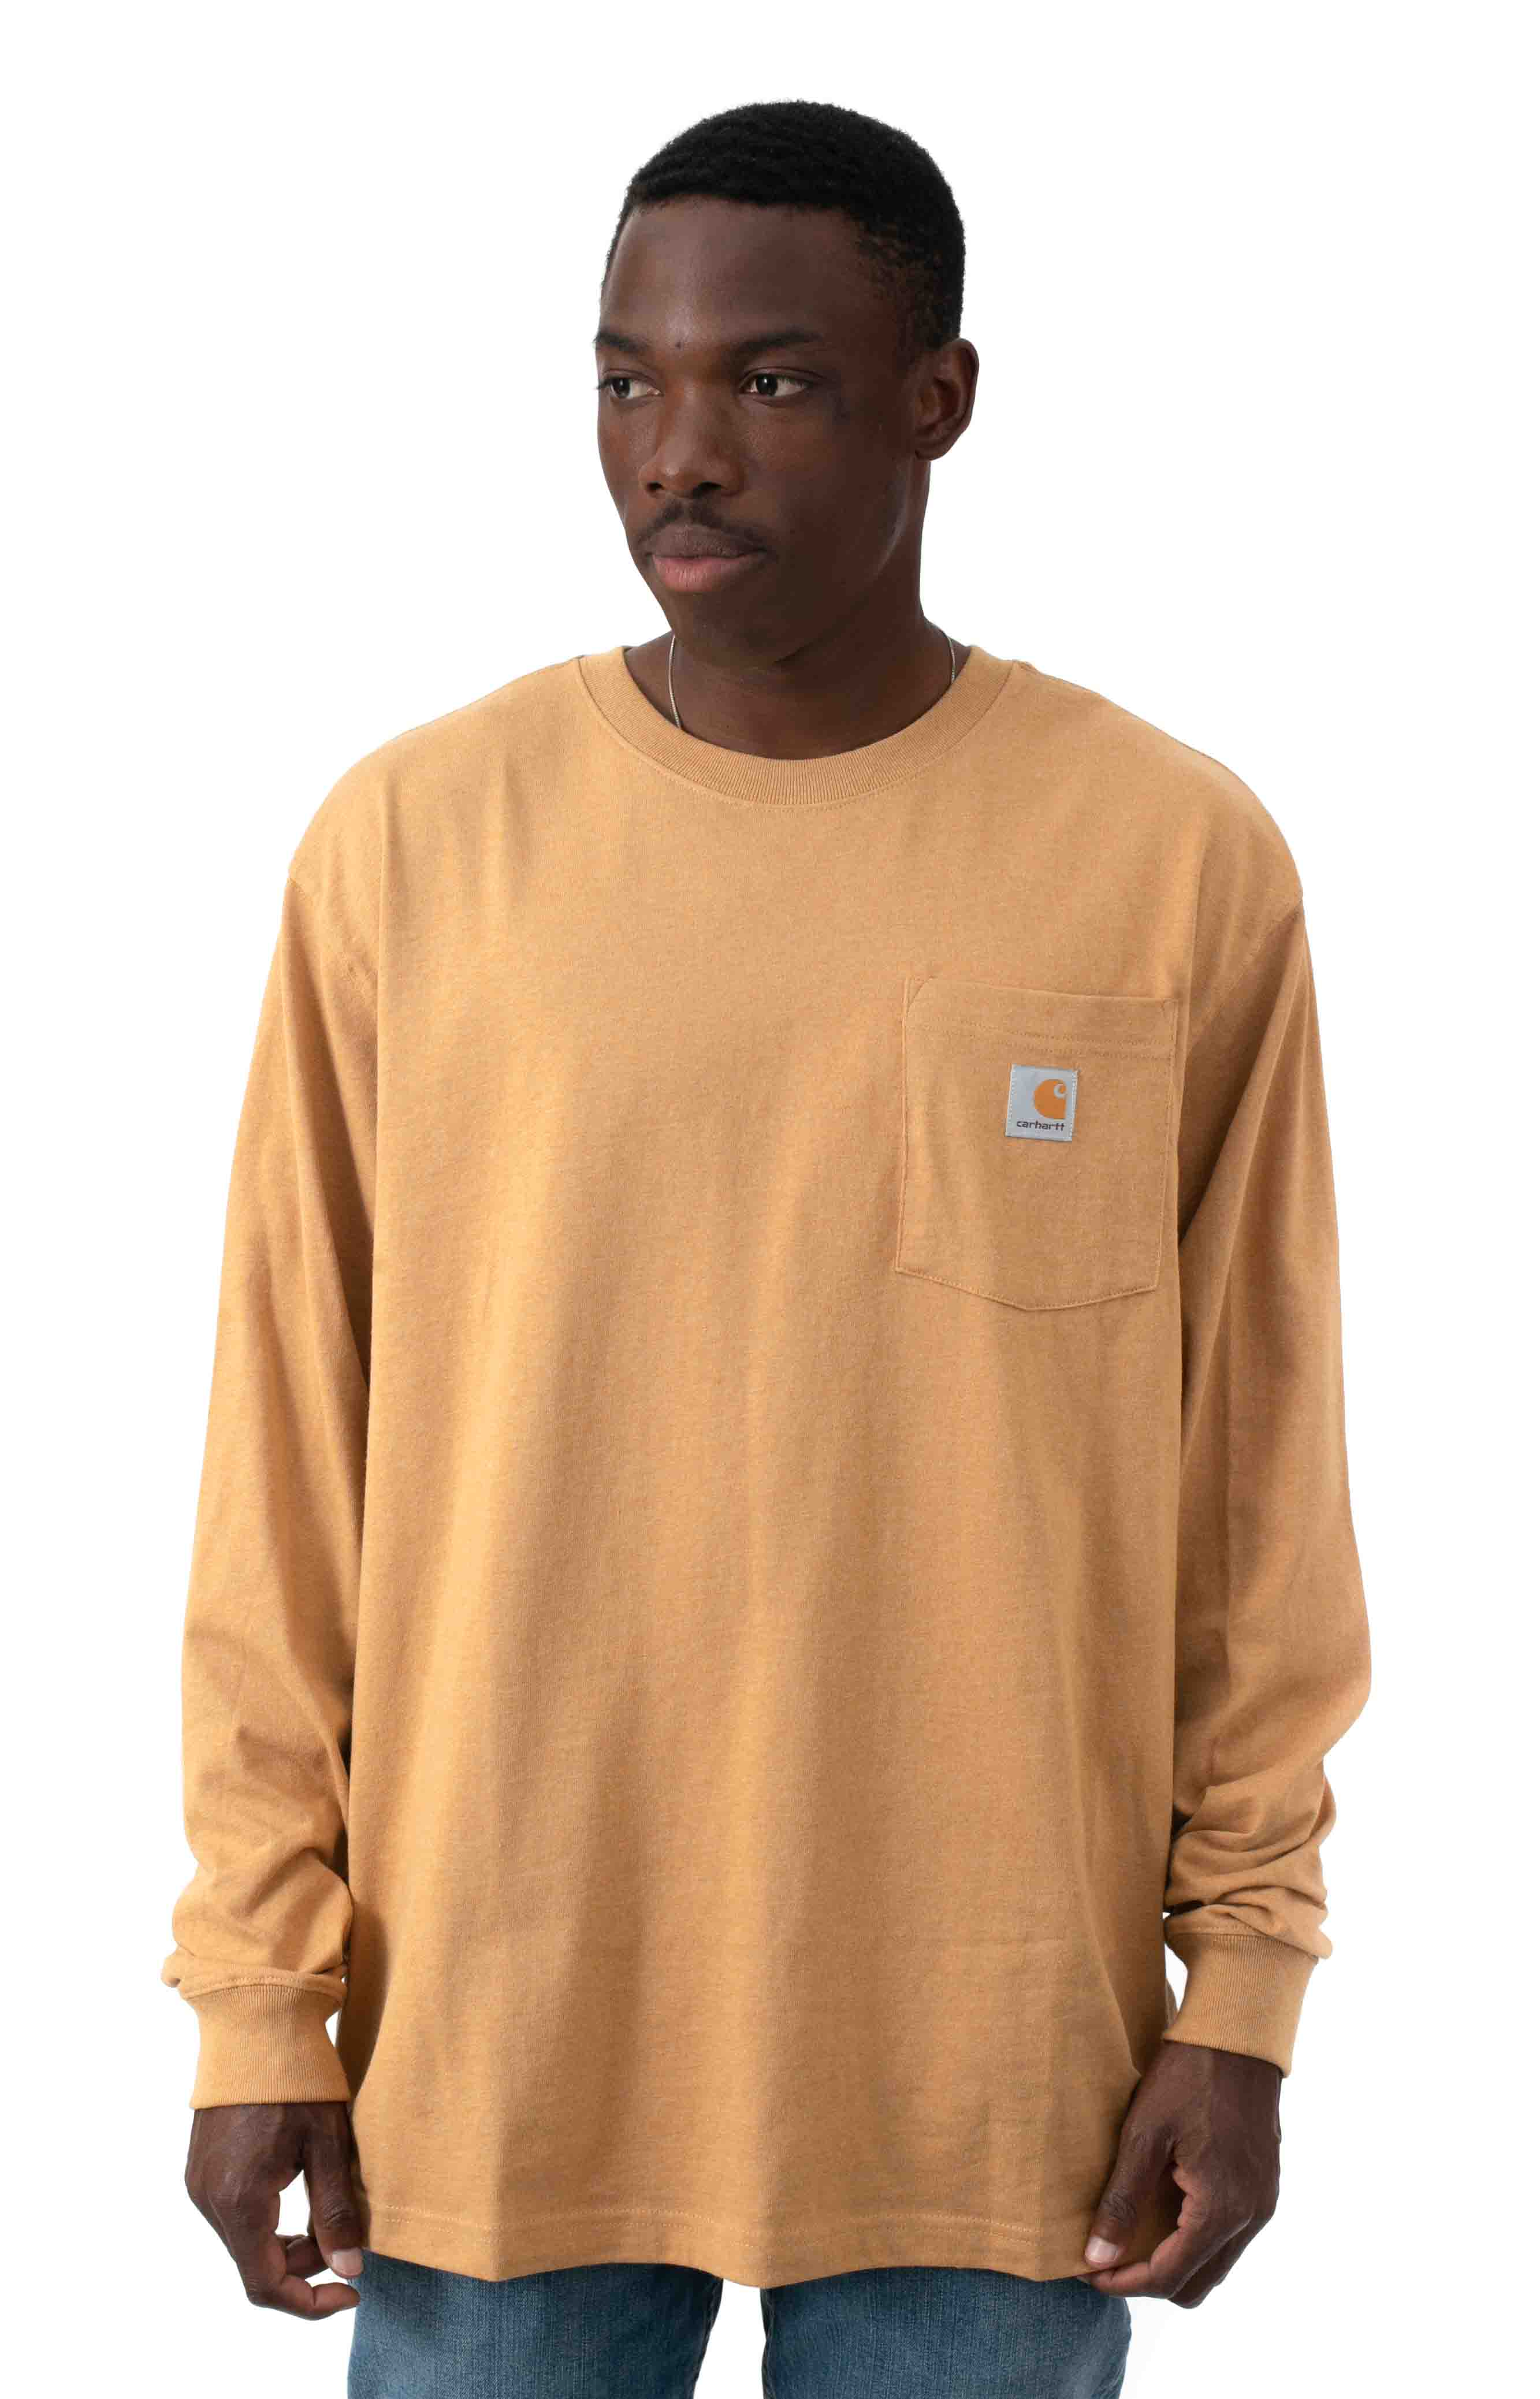 (K126) L/S Workwear Pocket Shirt - Yellowstone Heather